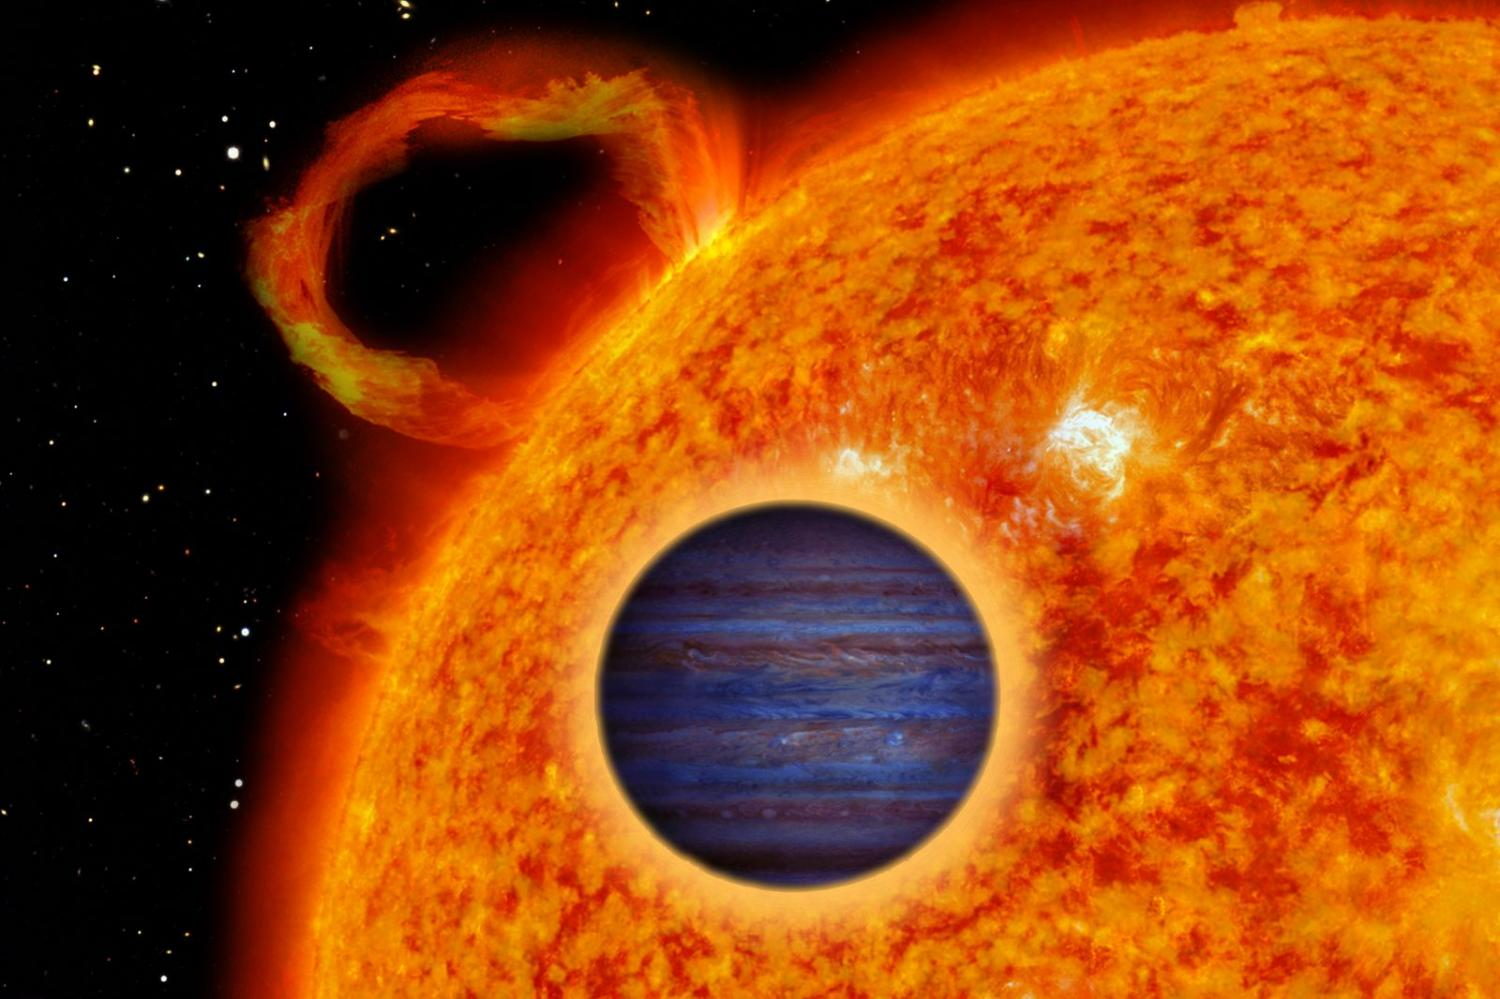 Astronomers Discover Two New  U0026 39 Hot Jupiter U0026 39  Exoplanets